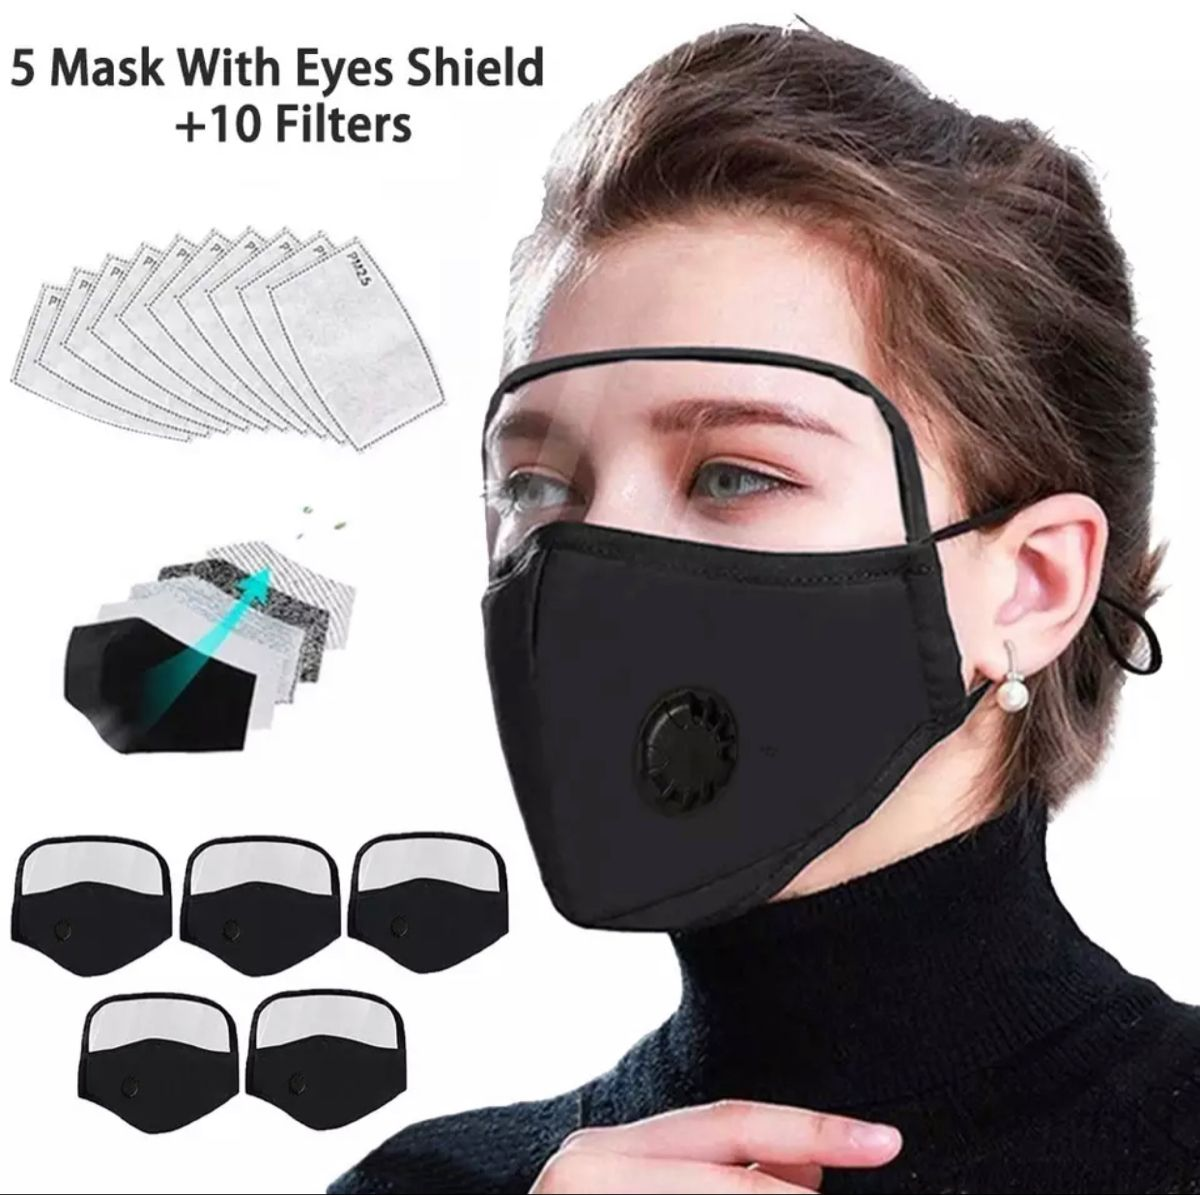 Activated Carbon Filter Replaceable Haze Face Mouth Nose Health Washable Reusable Cotton Bandana with Detachable Eye Shield Kids Face Bandanas with Breathing Valve